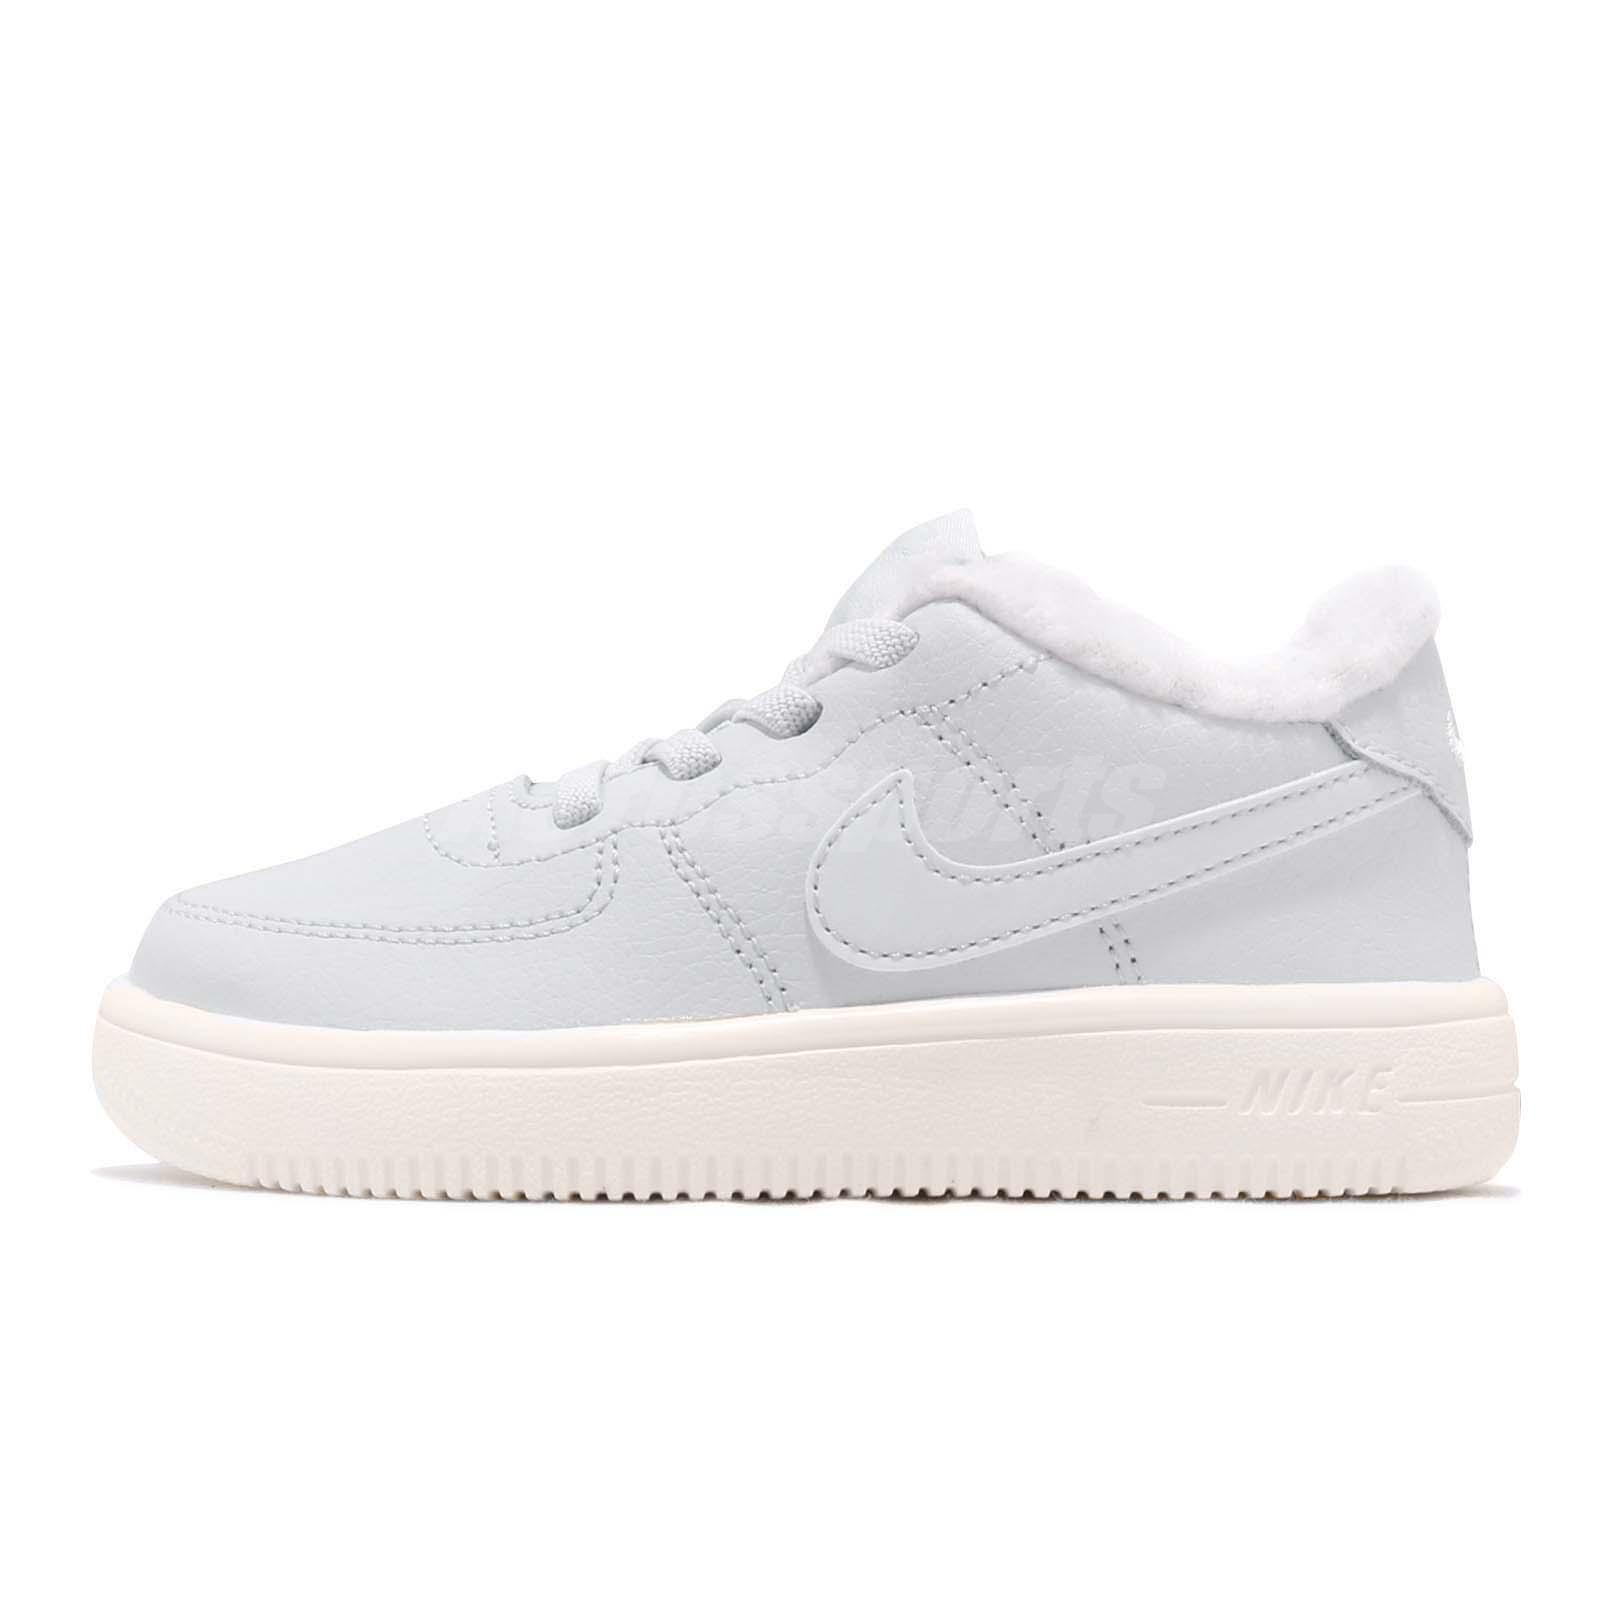 new product 0e352 e7308 Nike Force 1 18 SE TD Pure Platinum Sail Toddler Infant Baby Shoes AR1134 -001